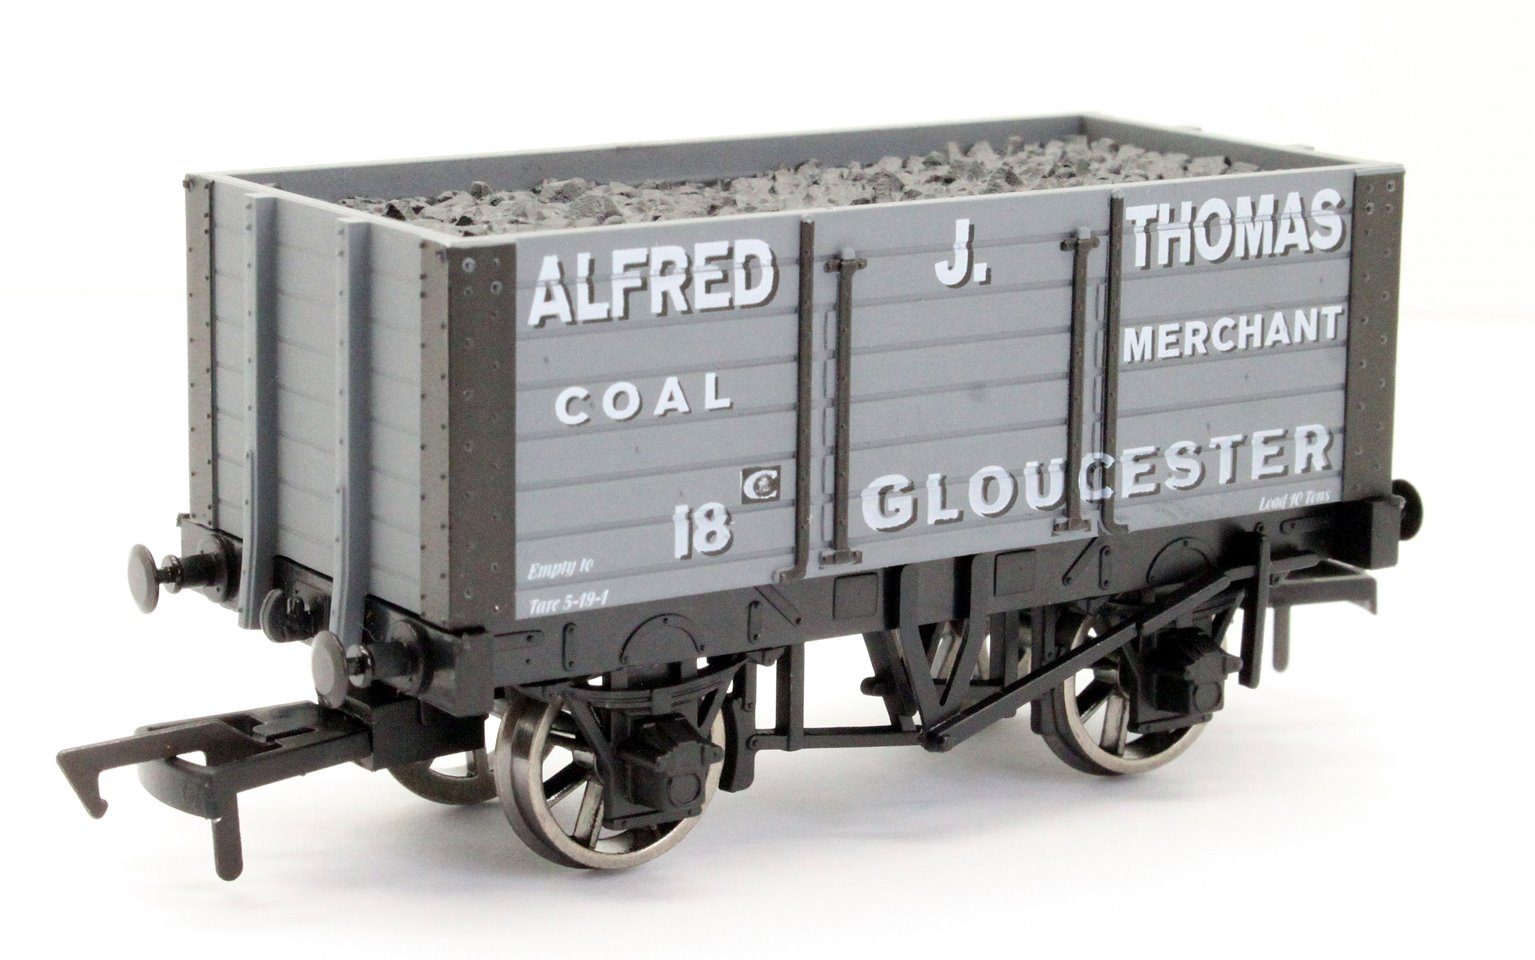 7 Plank Wagon 9ft Wheelbase Alfred J Thomas 18